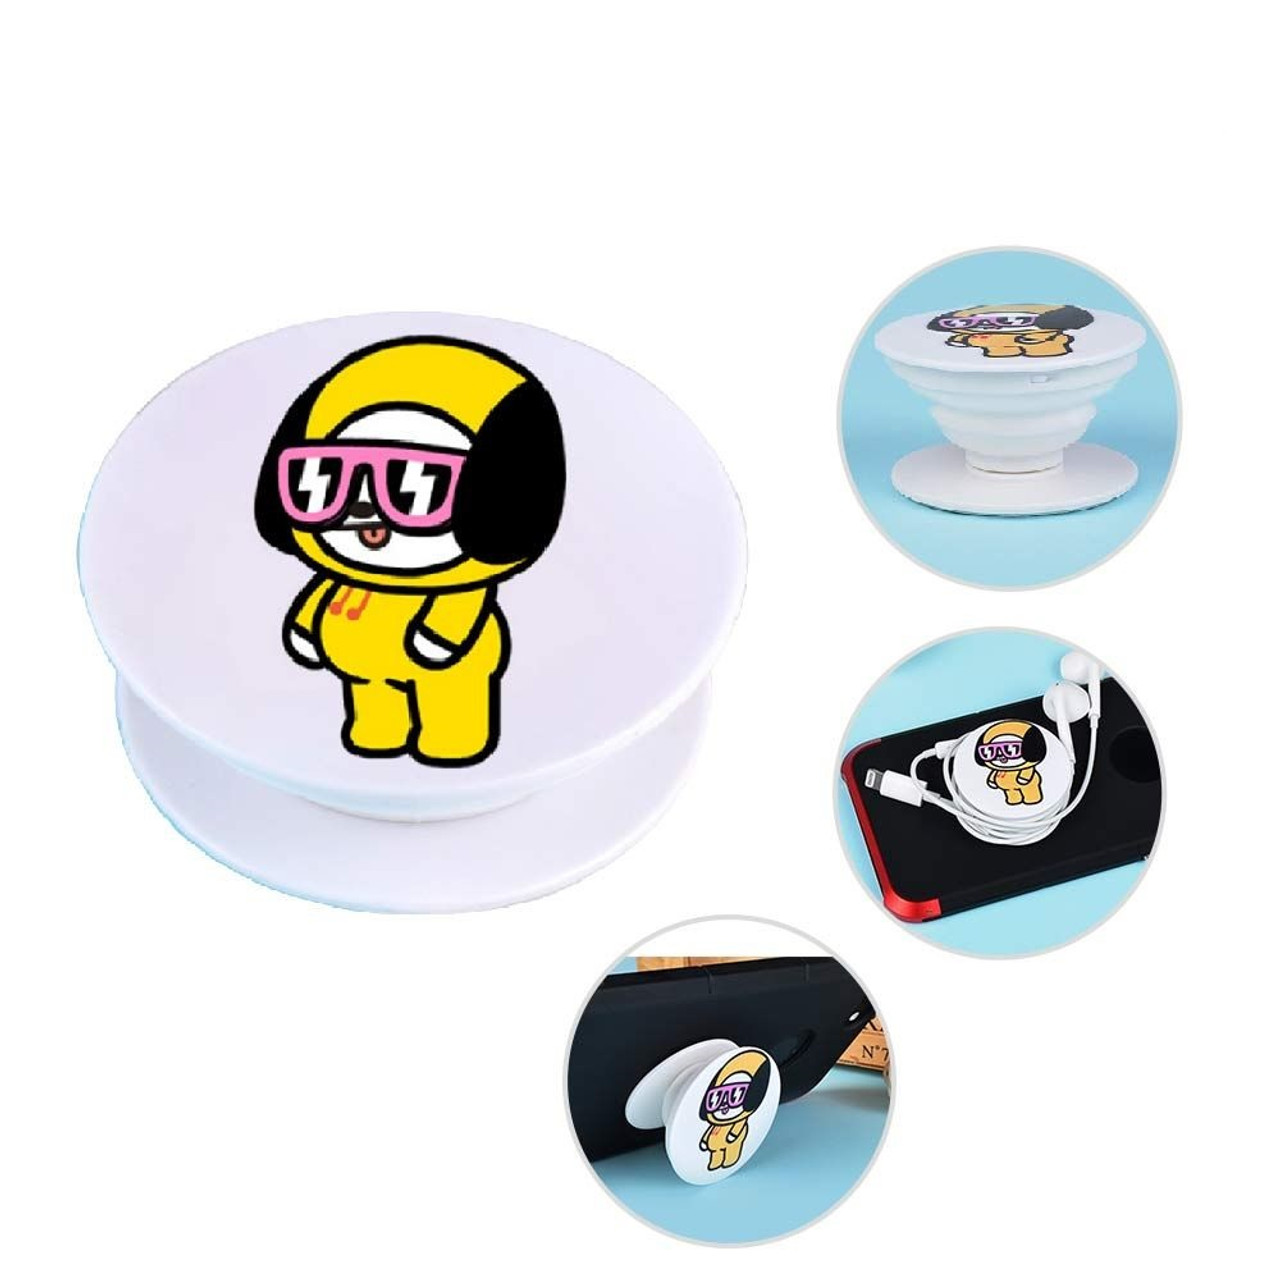 K Pop Bt21 Chimmy Popsockets Marble Cell Phone Grip Stand I have a chimmy that can only been seen by me, it disapears once an eye sets on it. bt21 chimmy popsocket